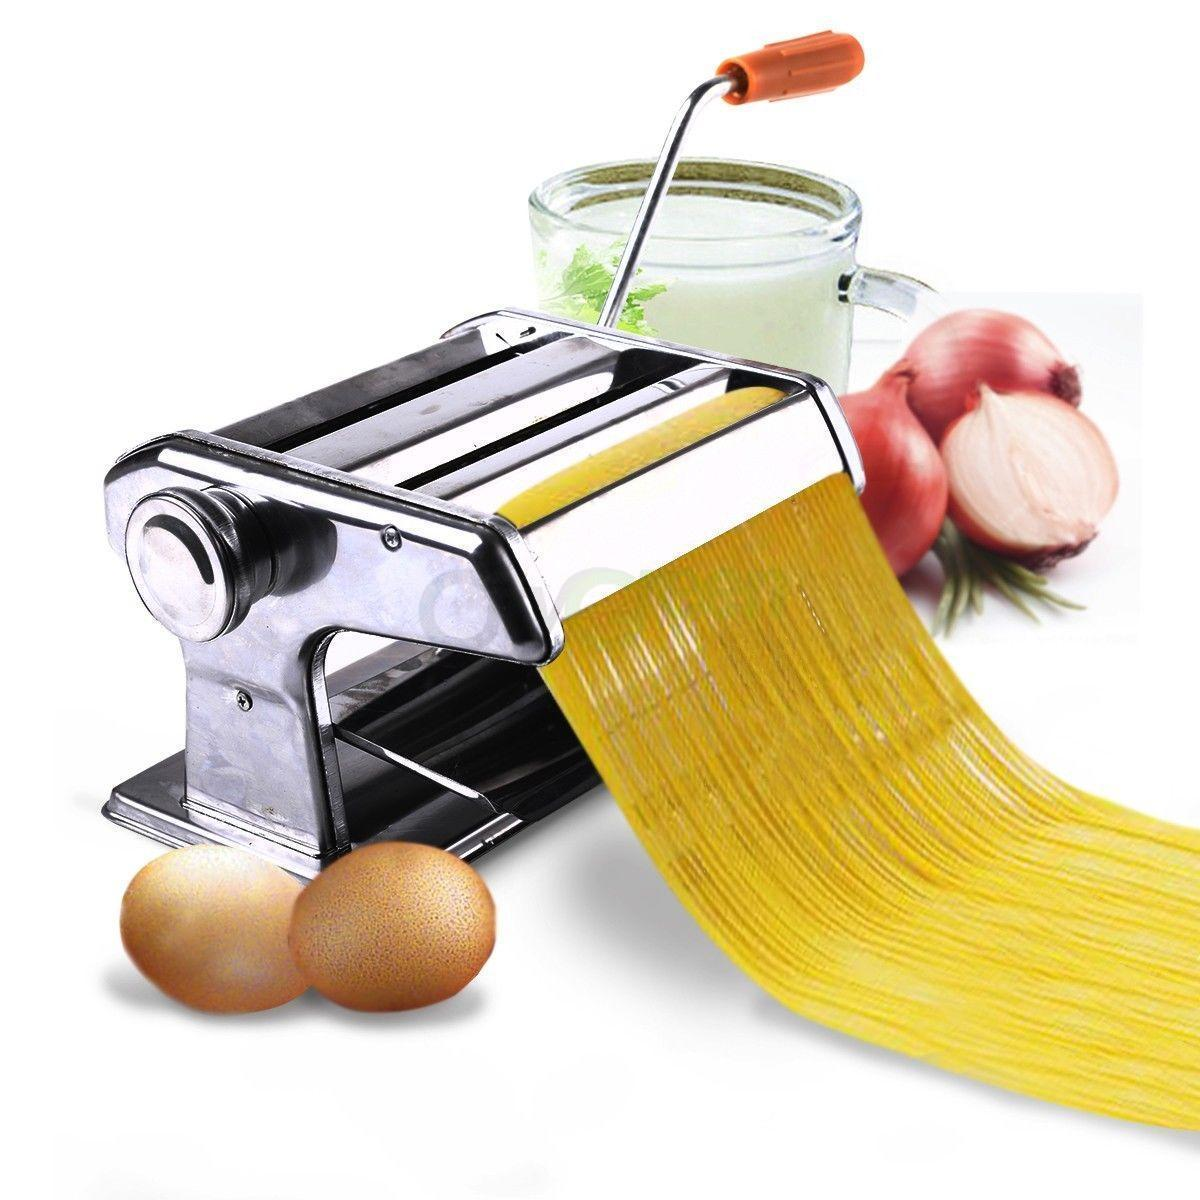 "Ktaxon 6"" Pasta Maker & Roller Machine Noodle Spaghetti & Fettuccine Maker Noodle Making Machine"